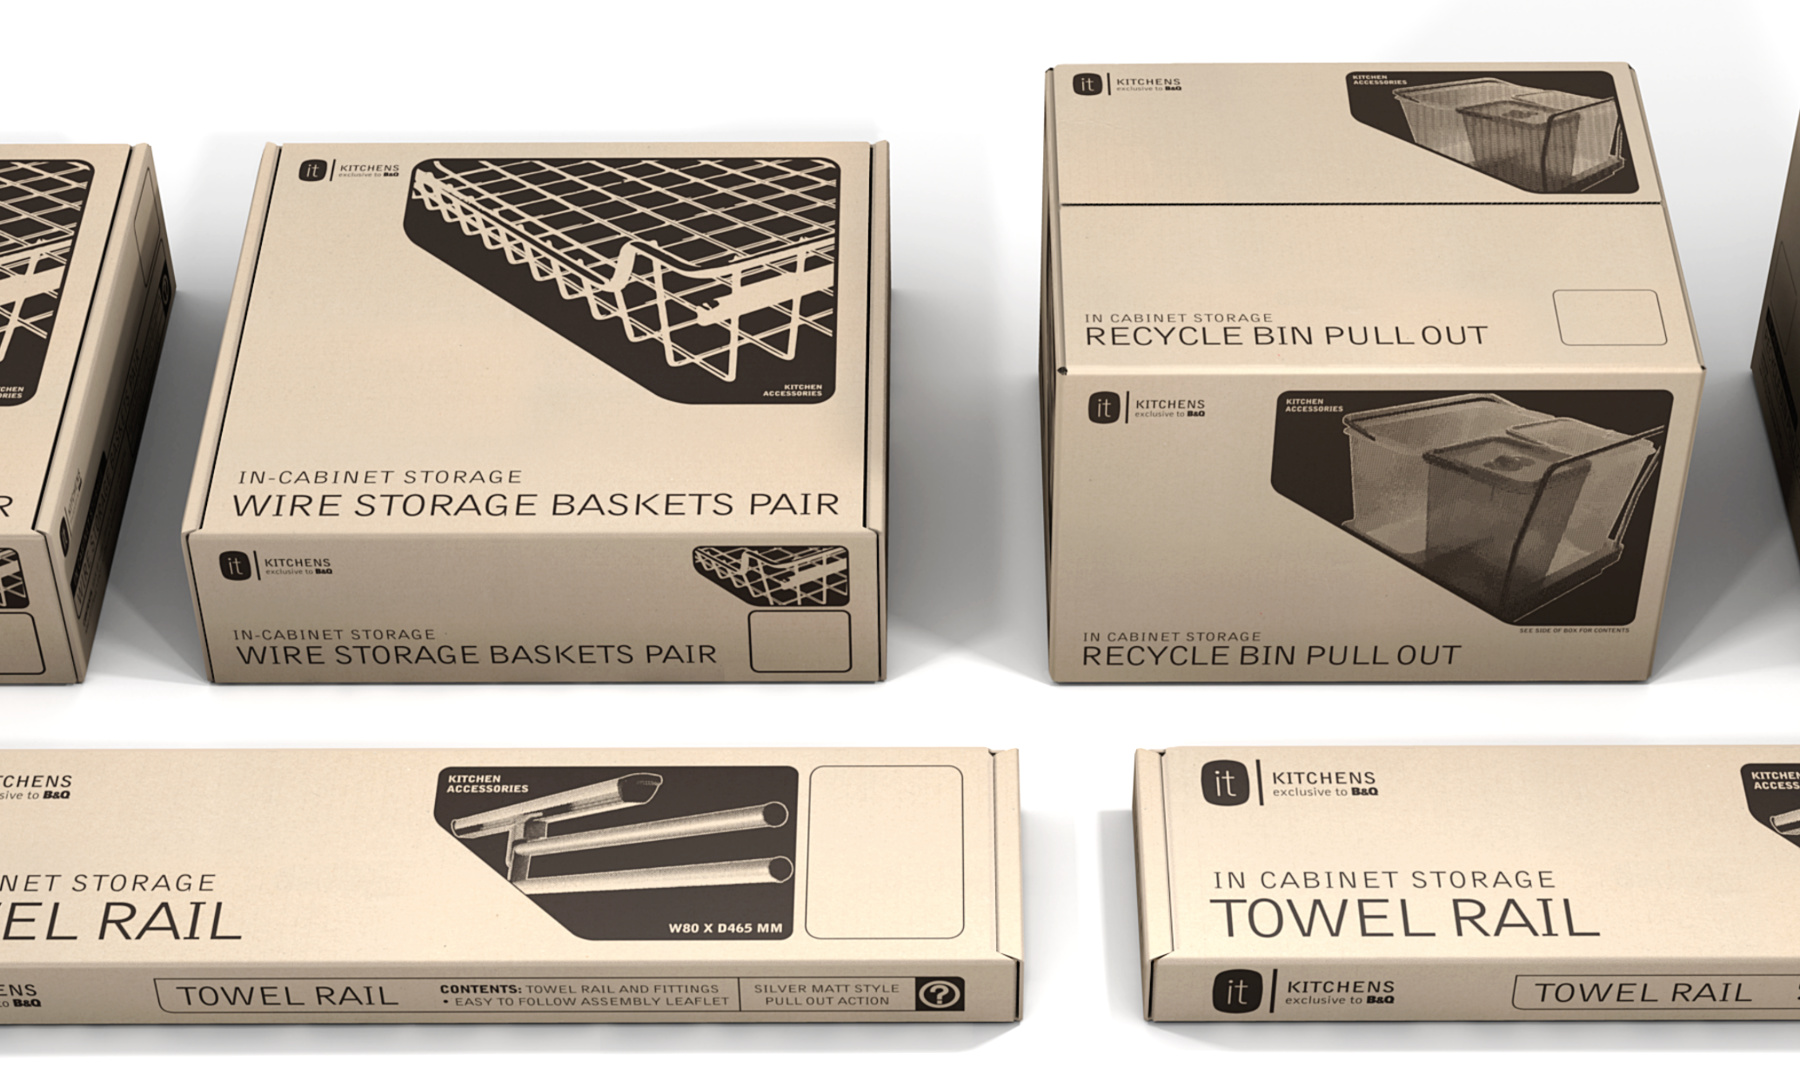 Cardboard Packaging Design